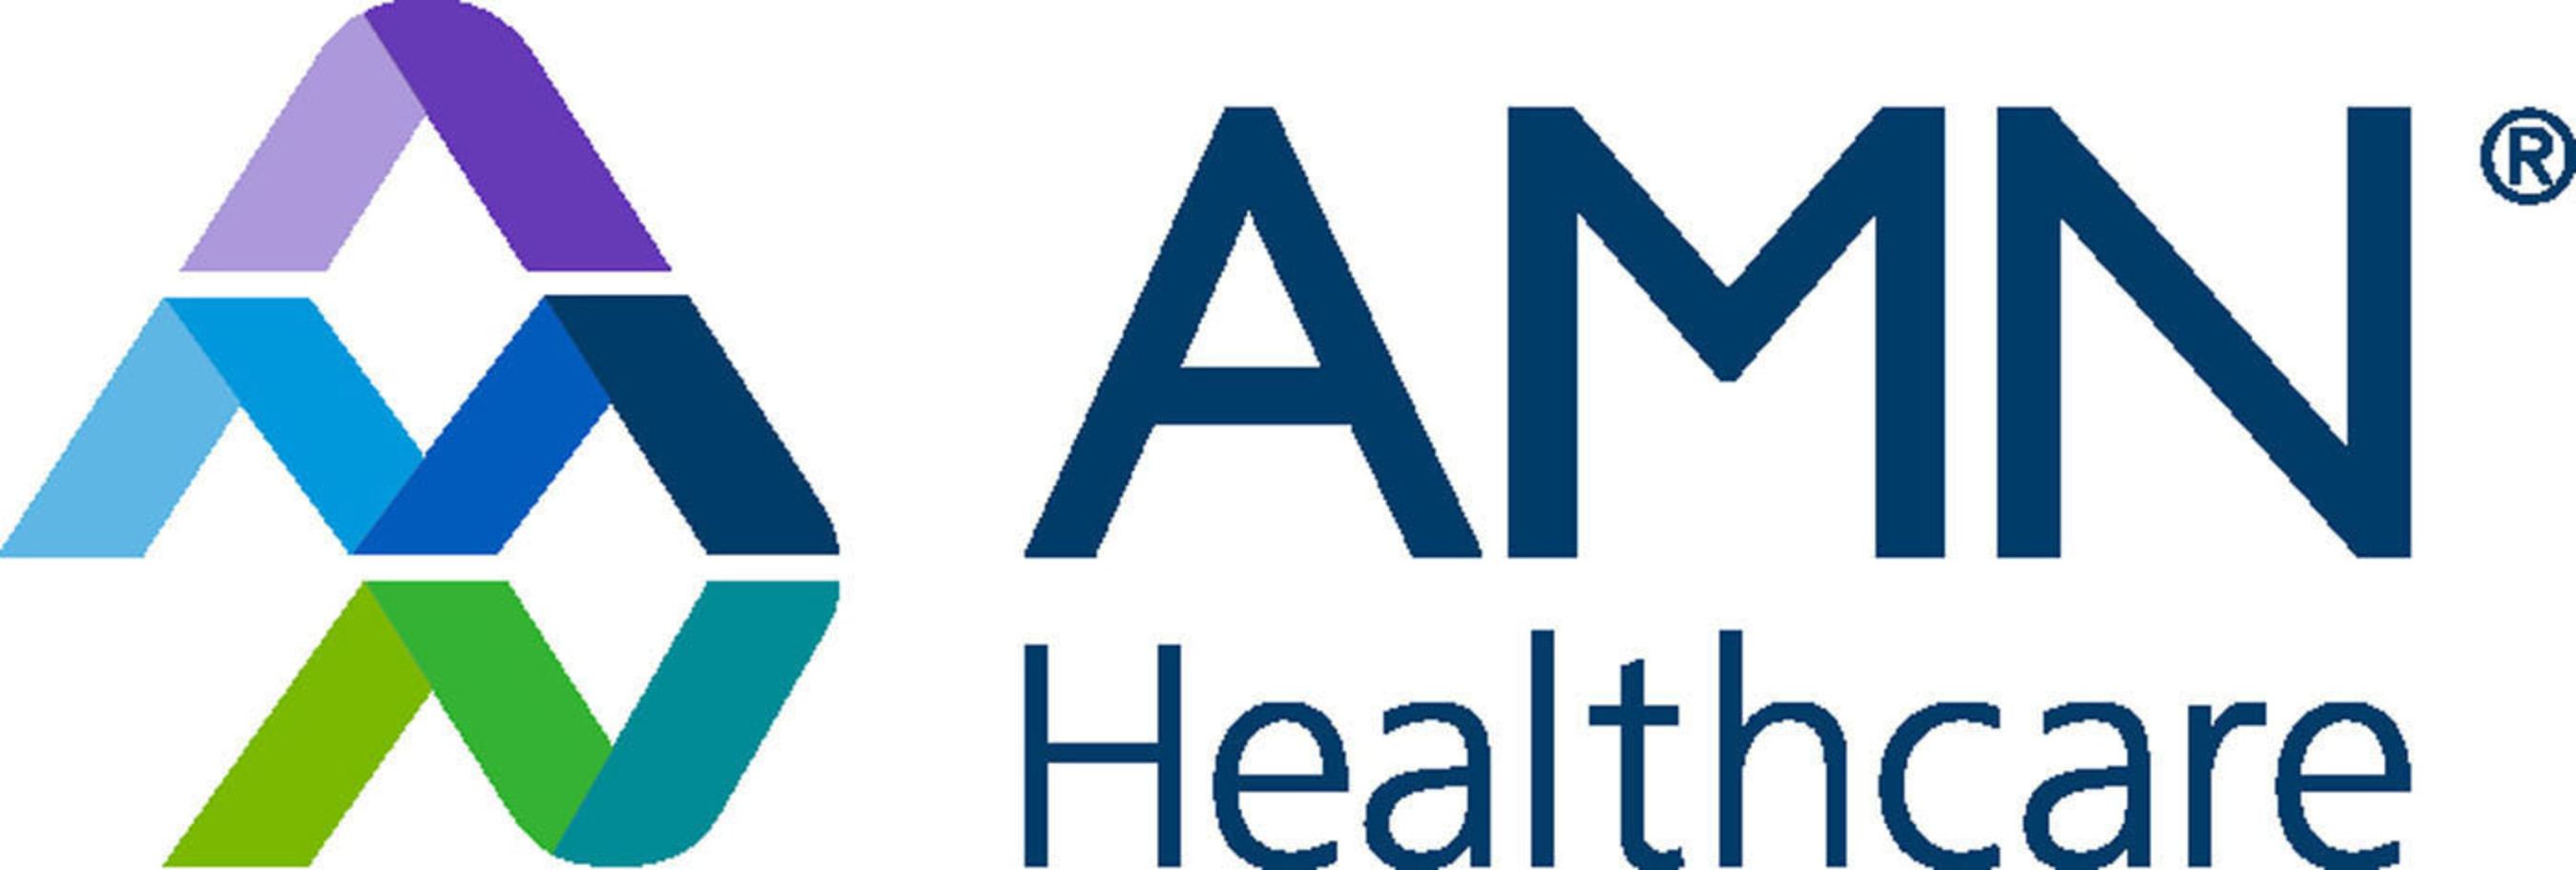 Dallas Business Journal Names AMN Healthcare's Sean Ebner and Travis Singleton to Influential